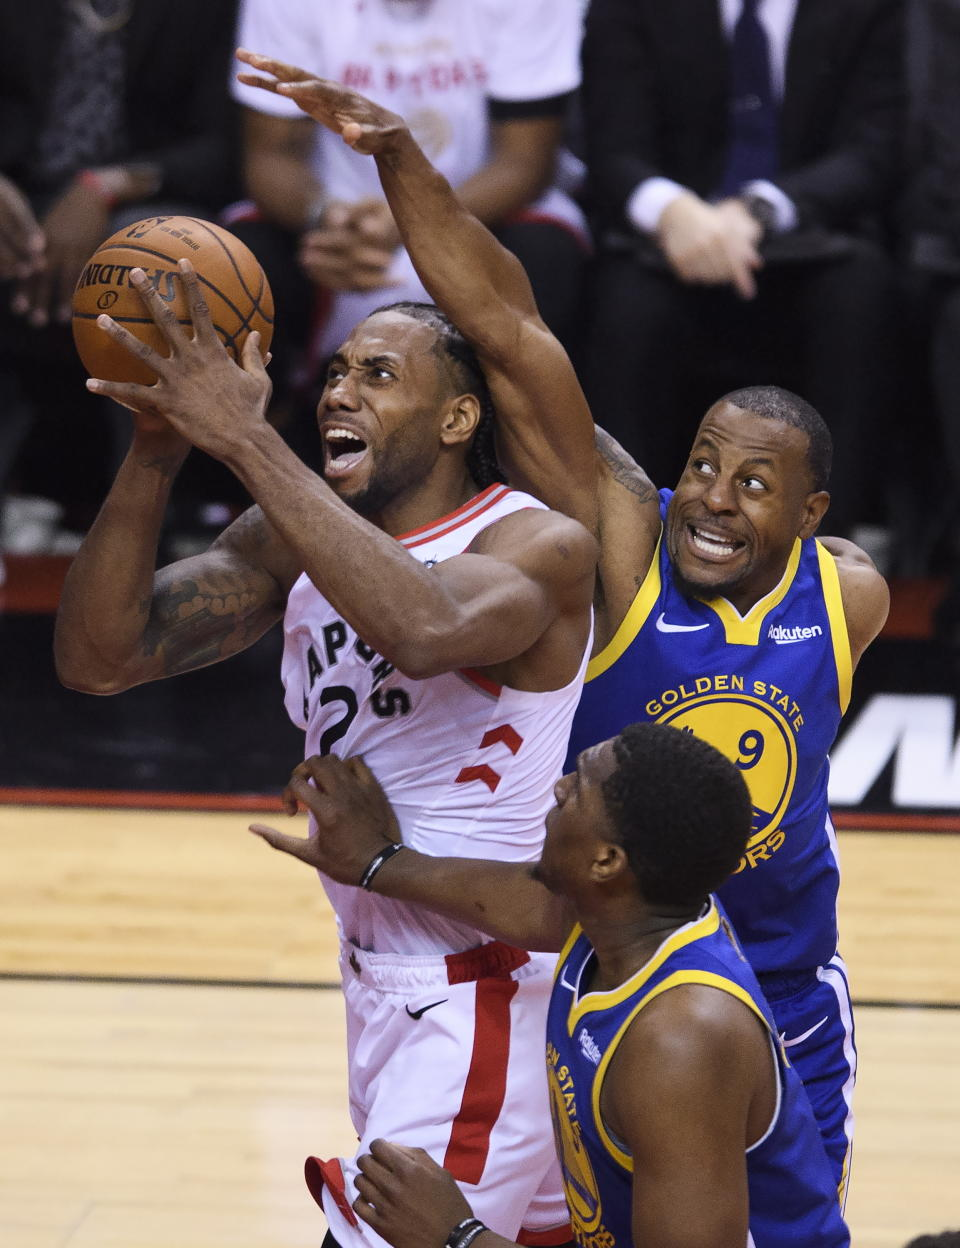 Toronto Raptors forward Kawhi Leonard (2) drives to the net against Golden State Warriors guard Andre Iguodala (9) during the first half of Game 1 of basketball's NBA Finals, Thursday, May 30, 2019, in Toronto. (Nathan Denette/The Canadian Press via AP)